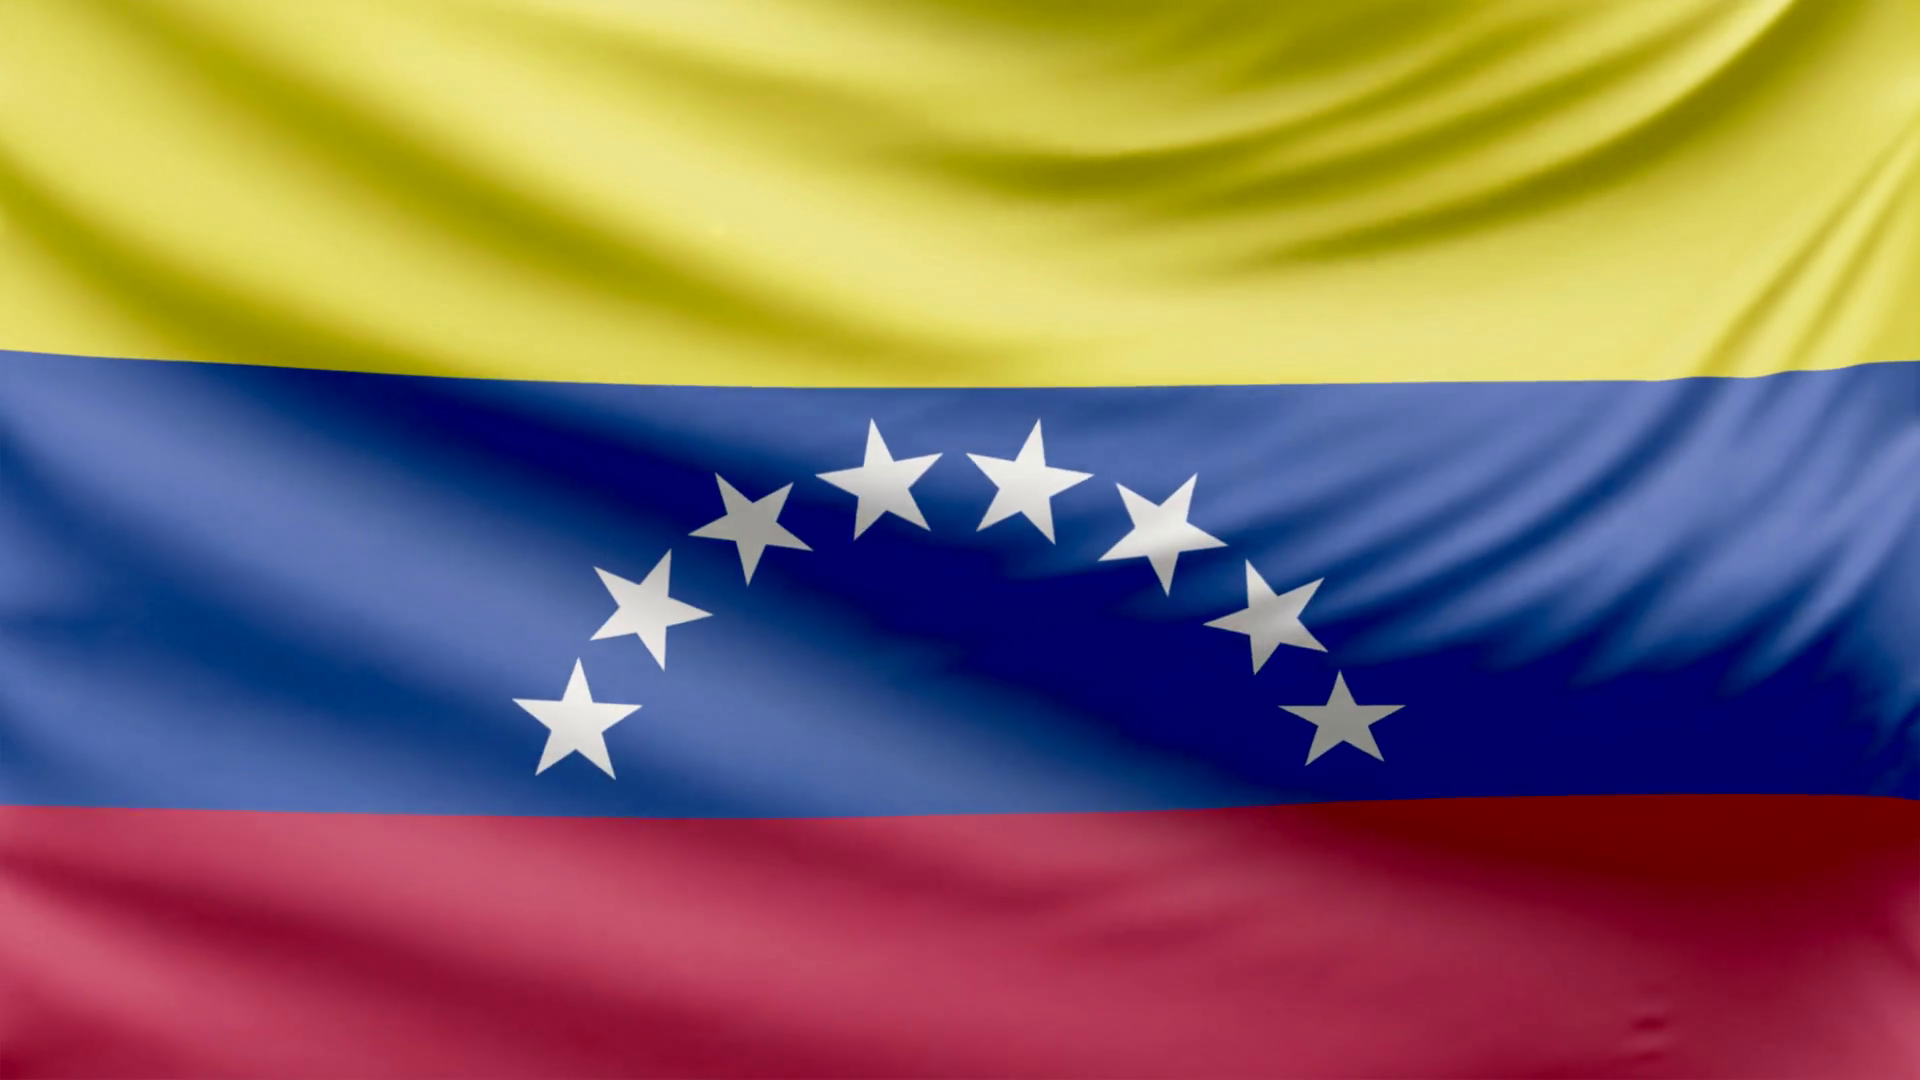 1920x1080 Realistic Beautiful Venezuela Flag 4k Motion Background ...